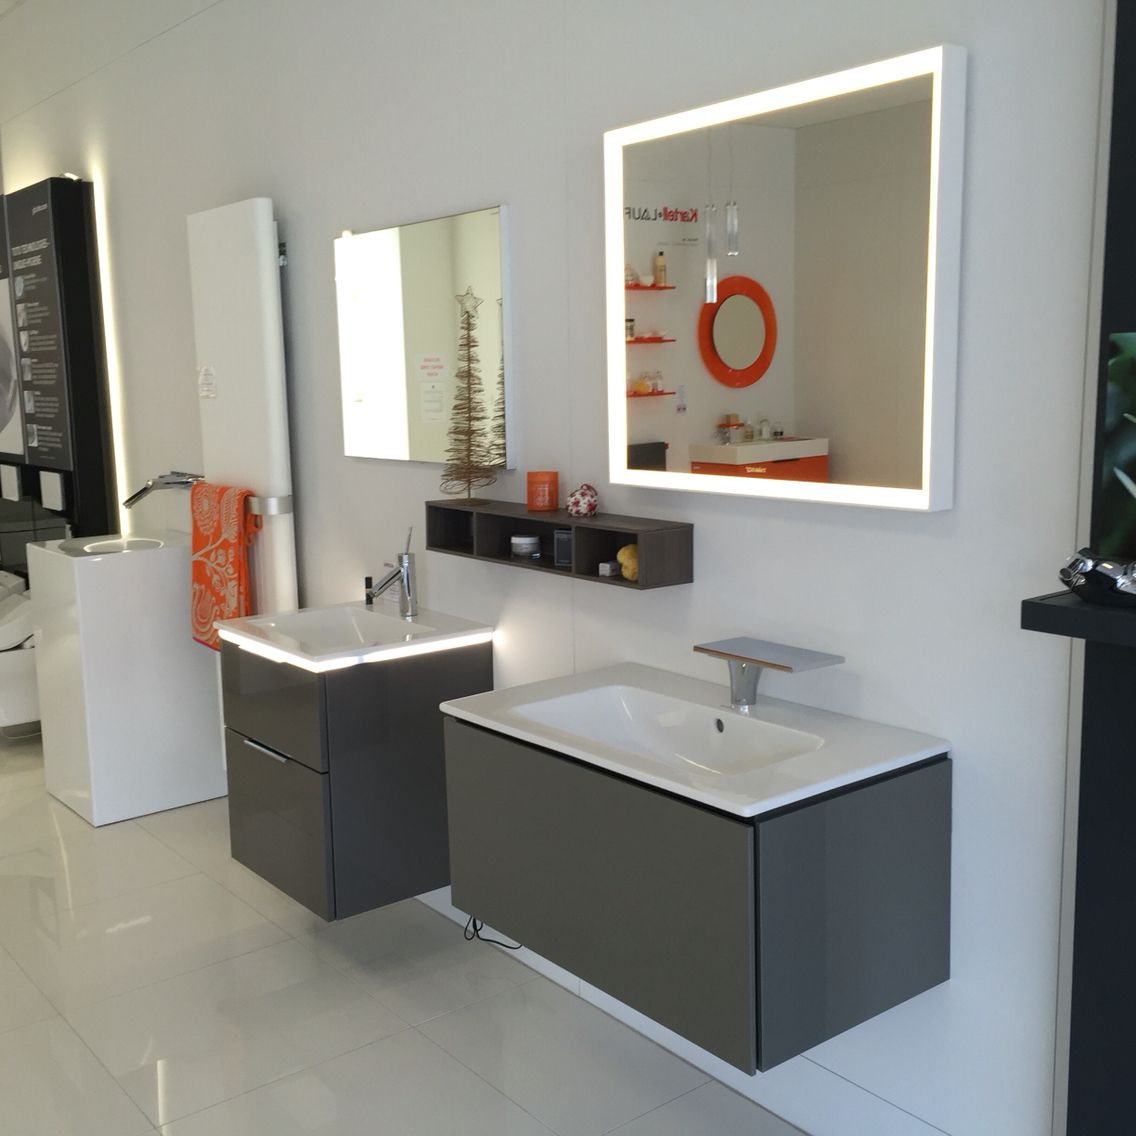 #Duravit L Cube Vanity Unit #Burgbad 2 Drawer Vanity Unit With #led  Lighting And Matching #mirror #Handgrohe #mixer